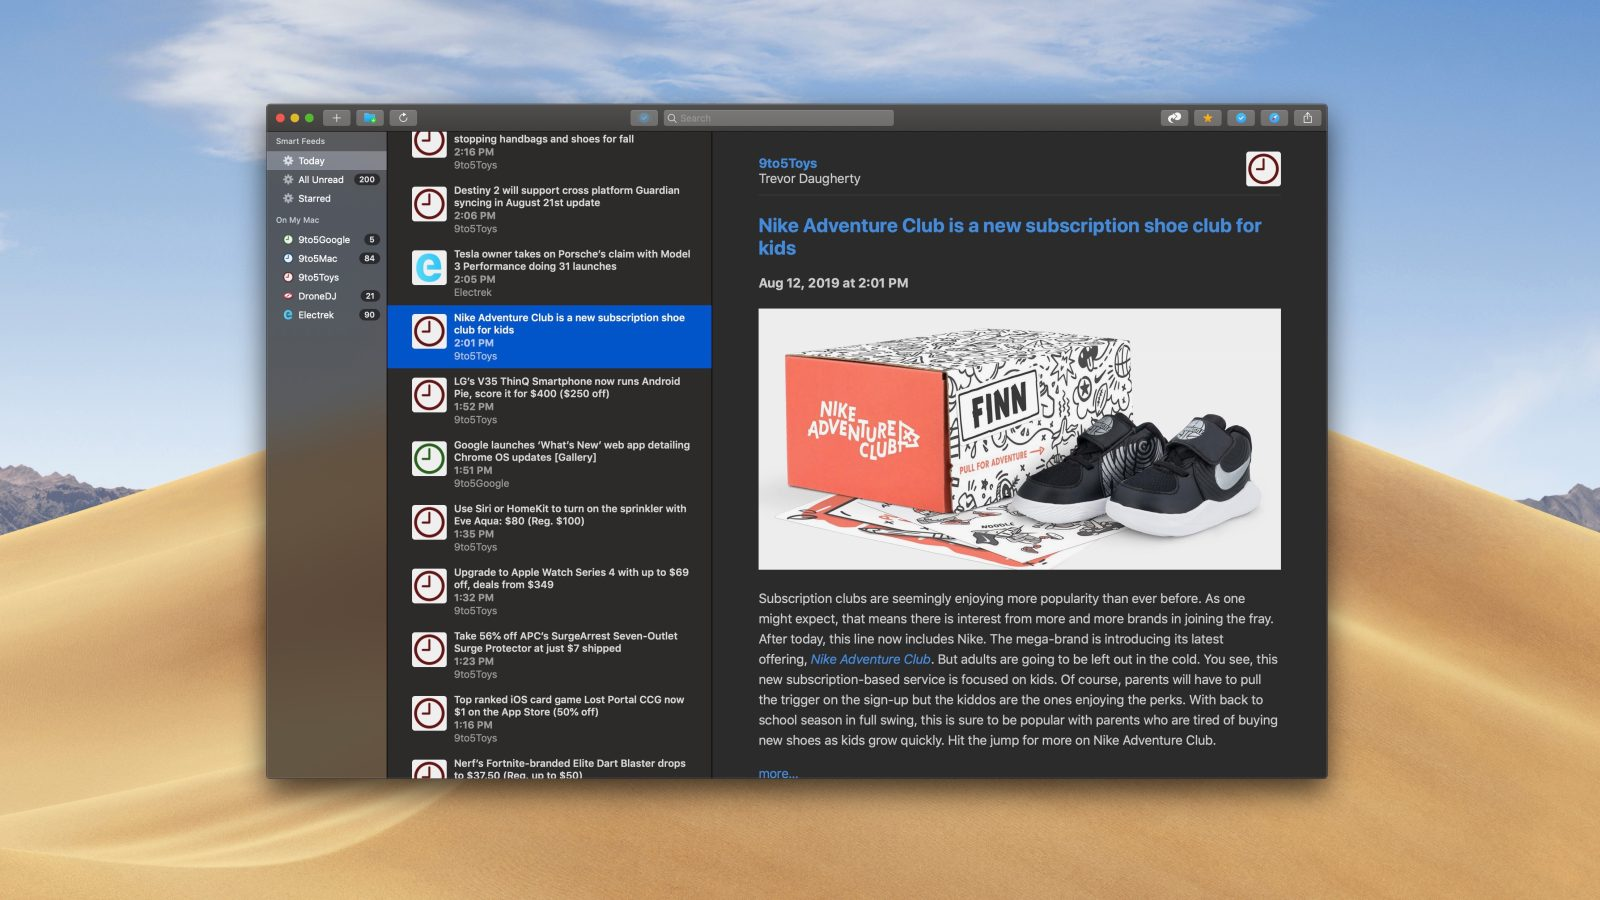 NetNewsWire 5 0 RSS reader for macOS launches in beta - 9to5Mac